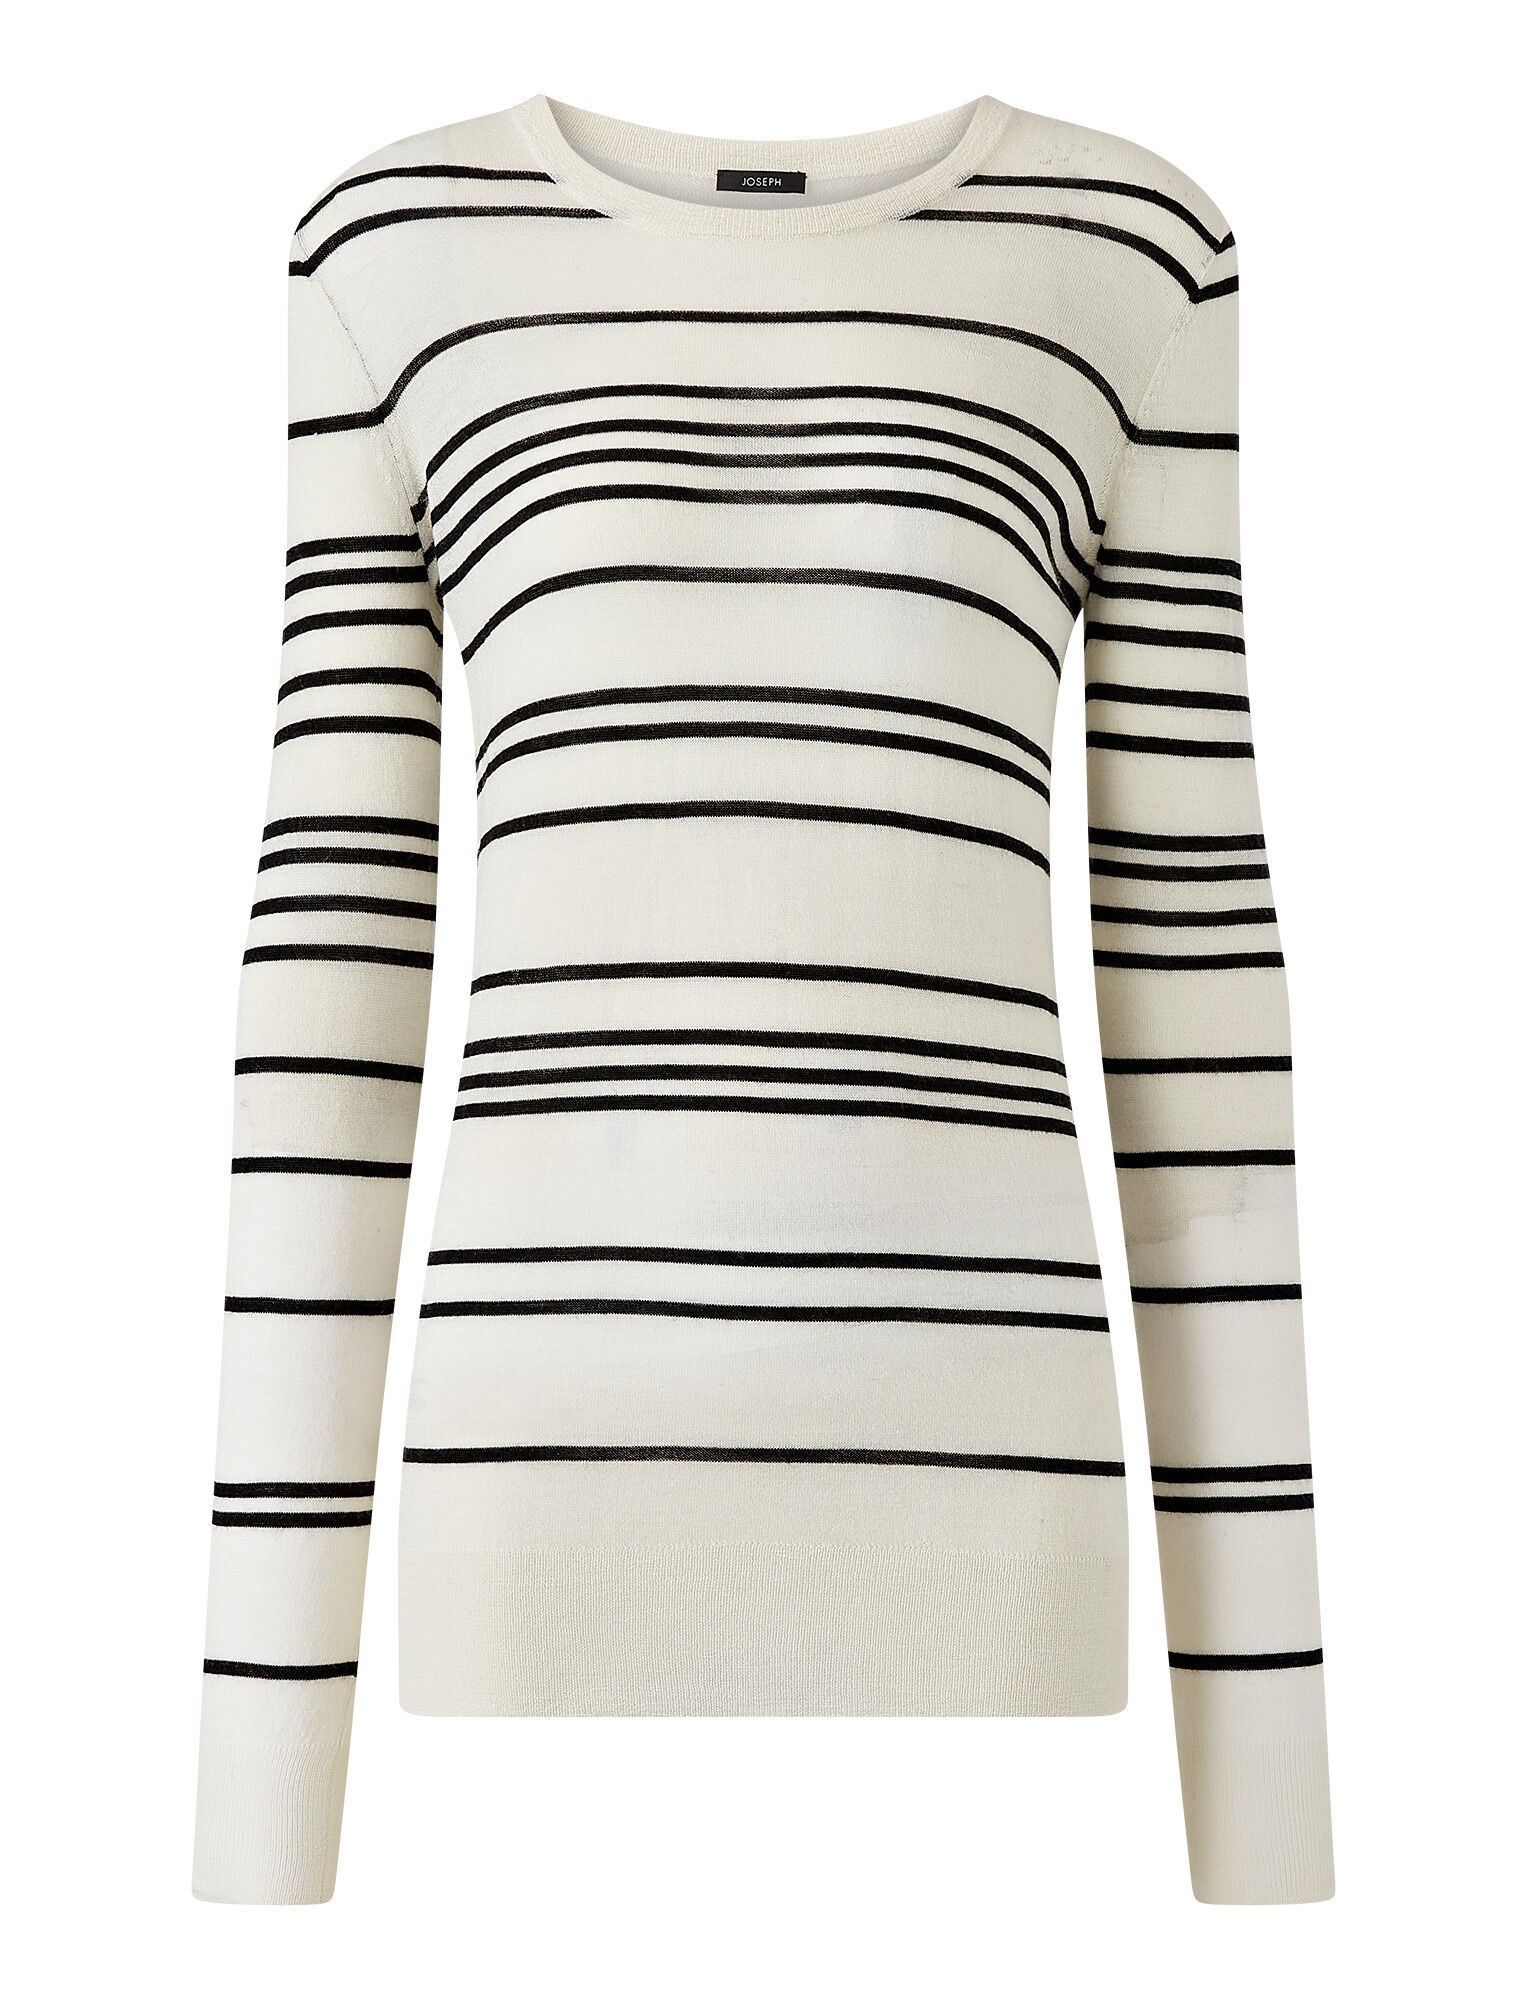 Joseph, Cashair Stripe Jumper, in IVORY COMBO